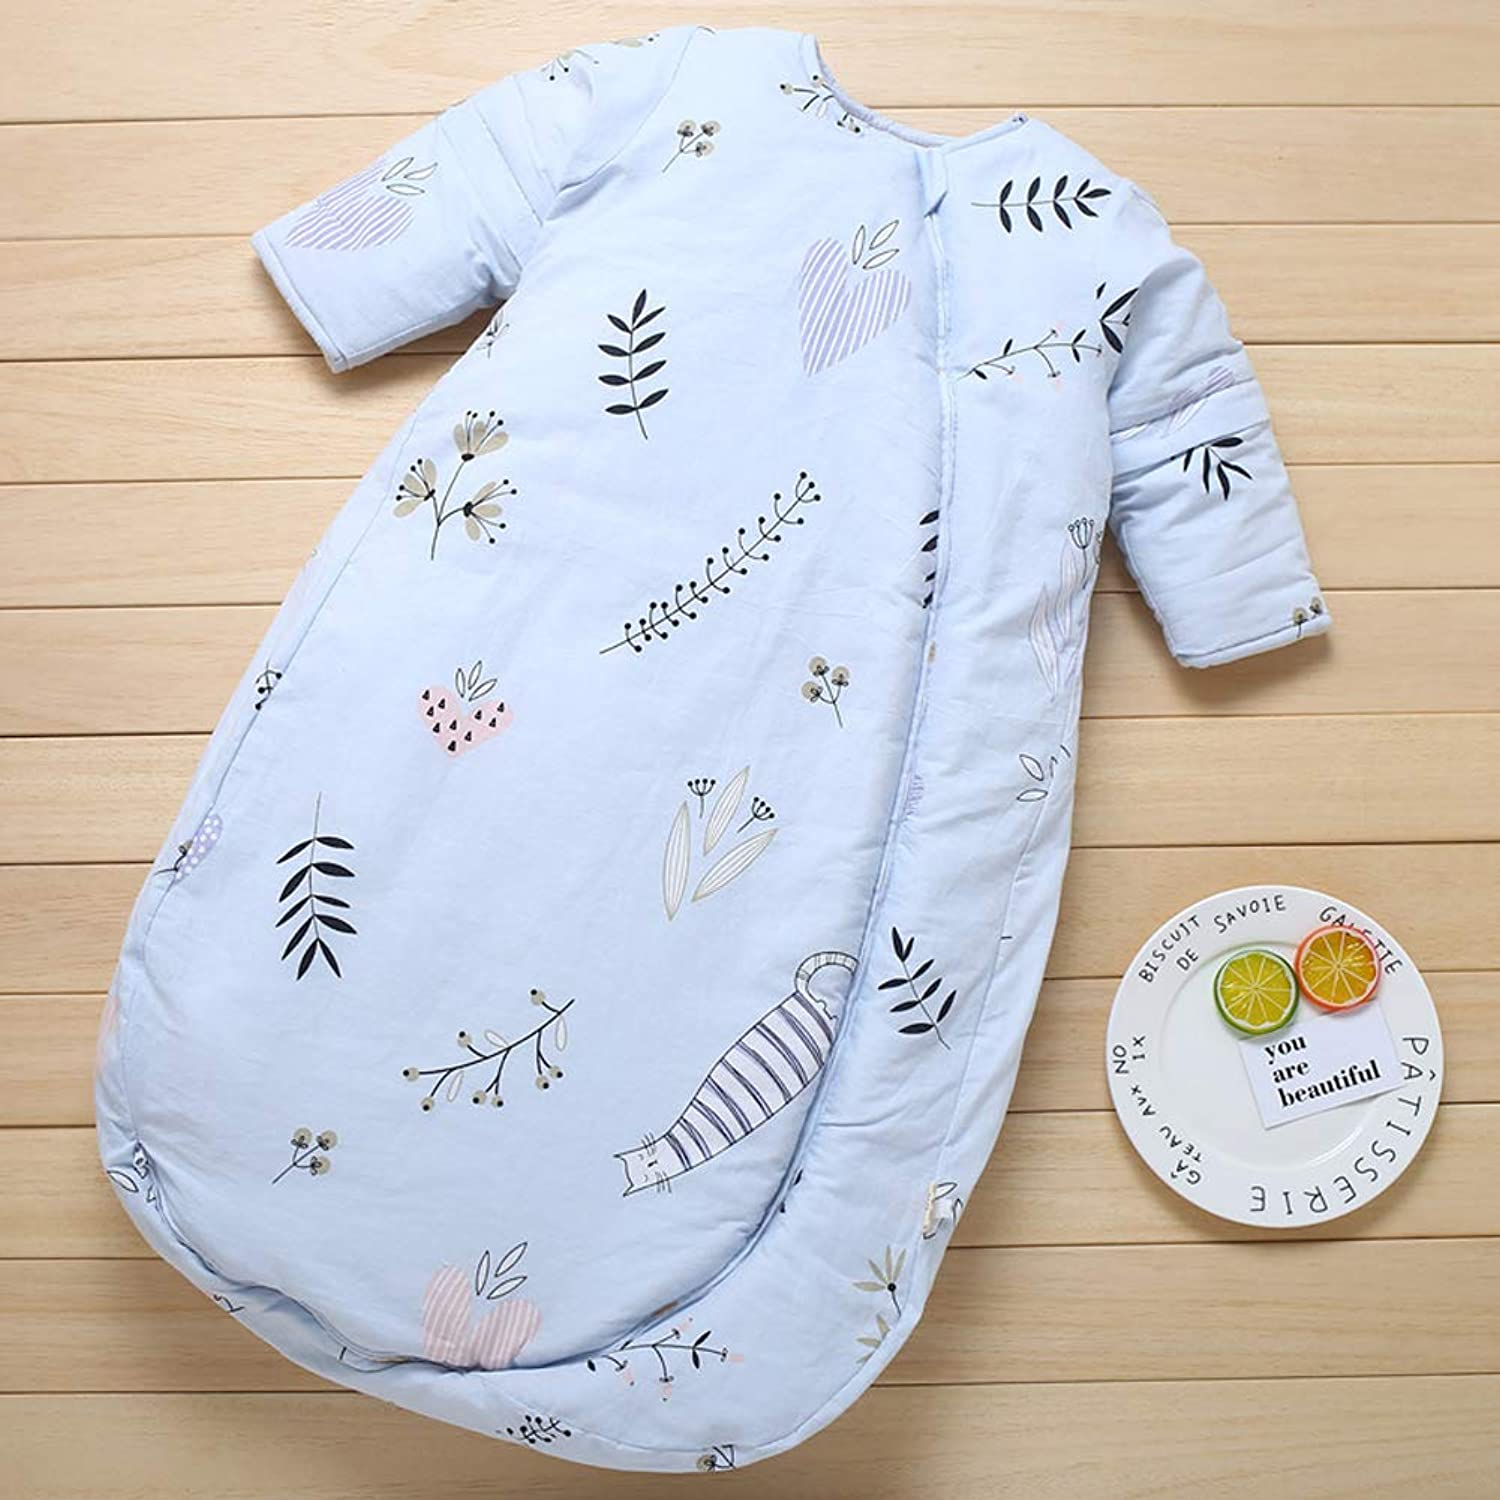 JHion Baby Sleep Sack,Unisex Baby Cotton Removable Long Sleeve Zip up Sleeping Bag Thicken Autumn Winter Flowers bluee 35 Years